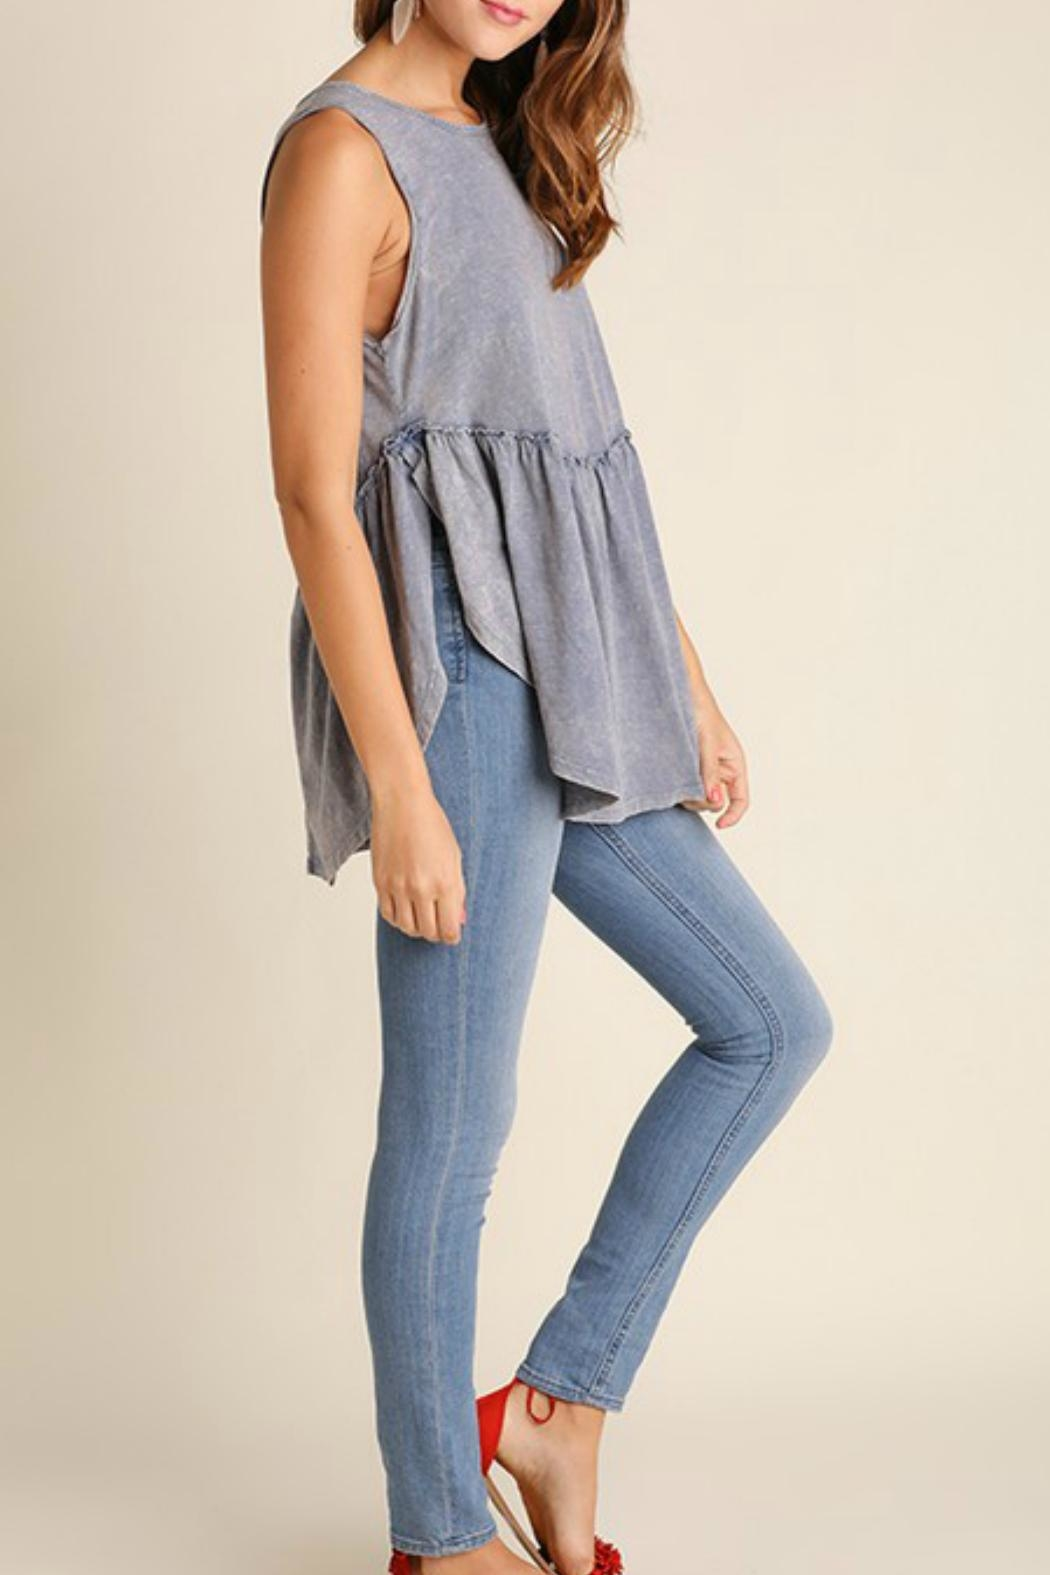 Umgee USA Garment-Washed Ruffle-Top - Front Full Image